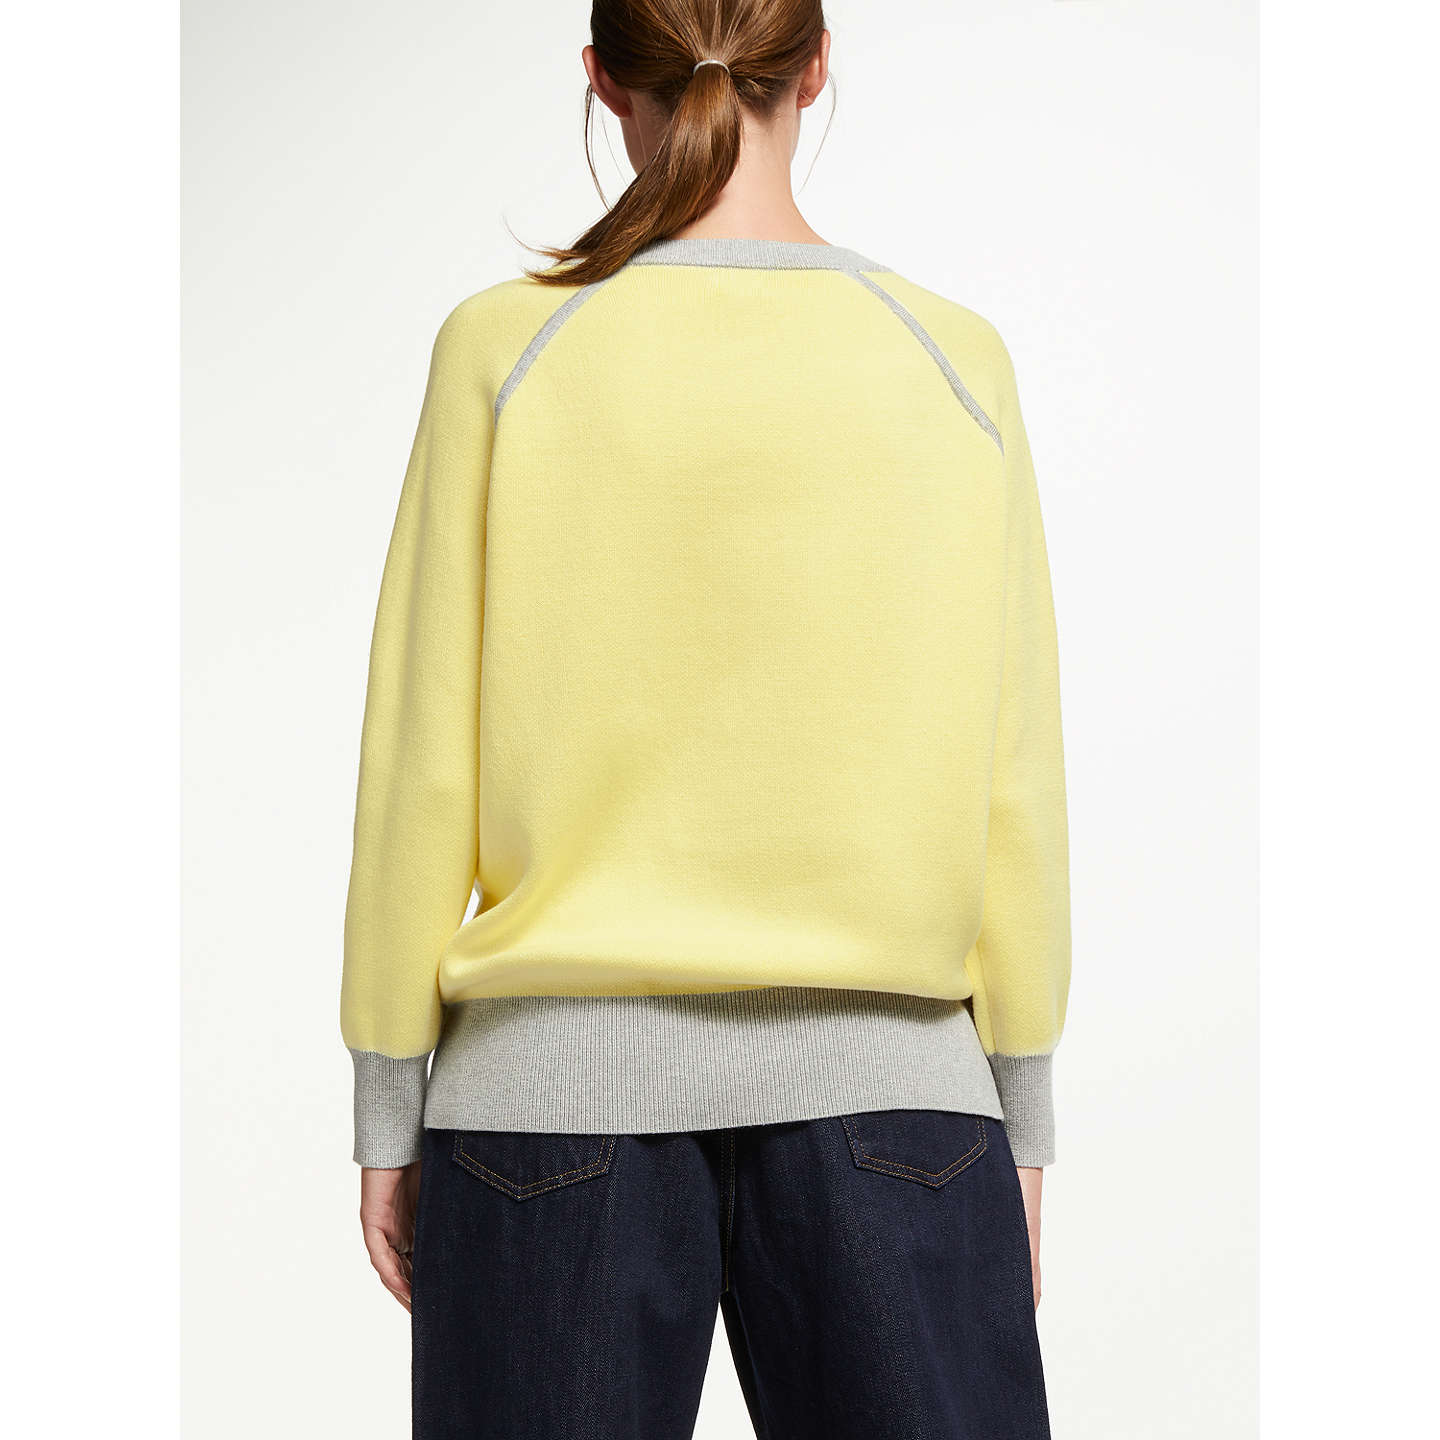 BuyKin by John Lewis Raglan Sleeve Knit, Yellow, S Online at johnlewis.com